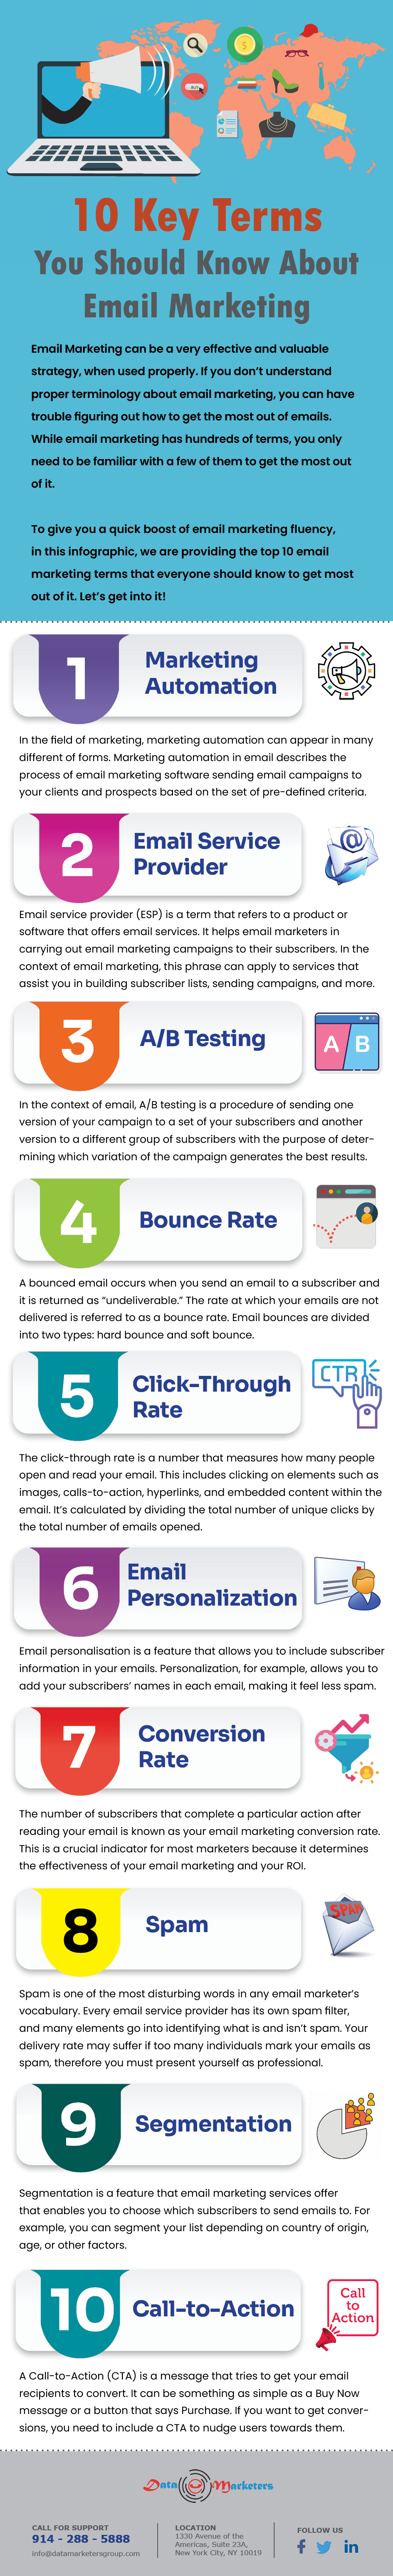 10 Key Terms You Should Know Email Marketing | Data Marketers Group